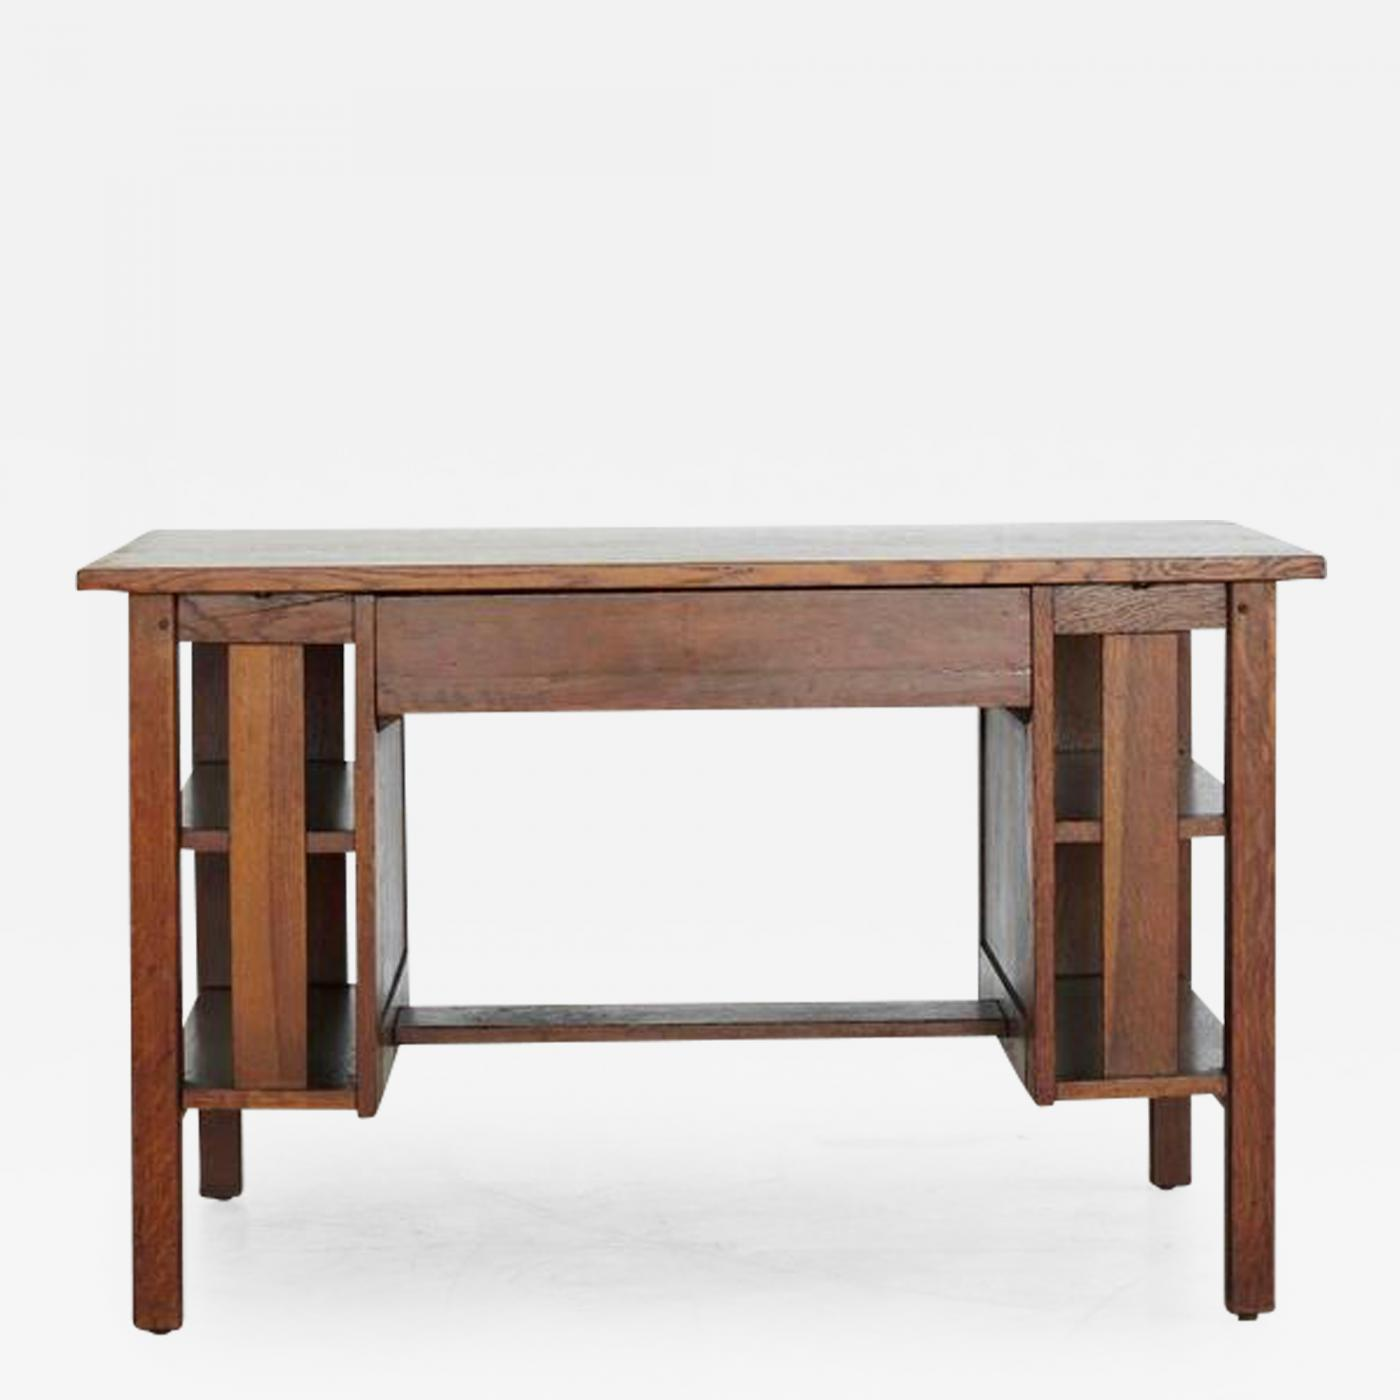 Arts & Crafts Mission Style Oak Library Table with Integrated